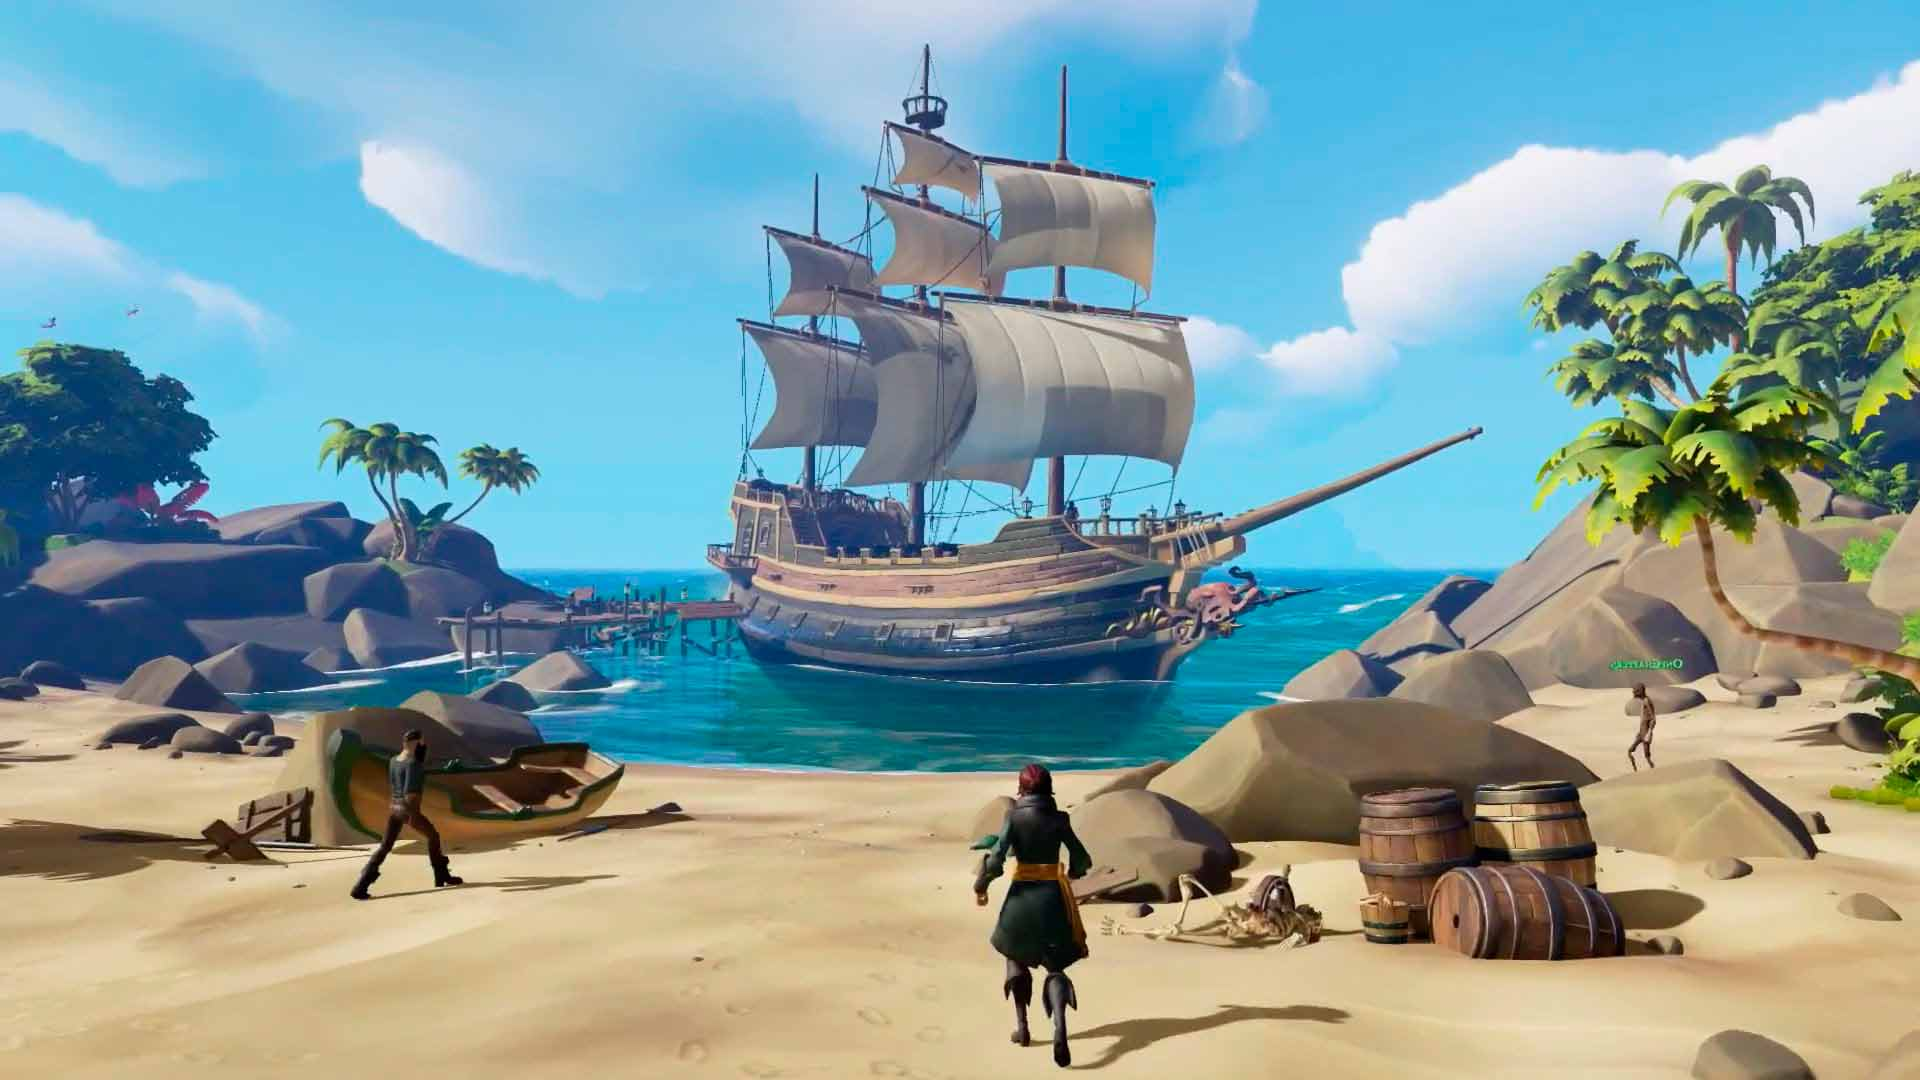 Sea Of Thieves HD Wallpapers - Wallpaper Cave